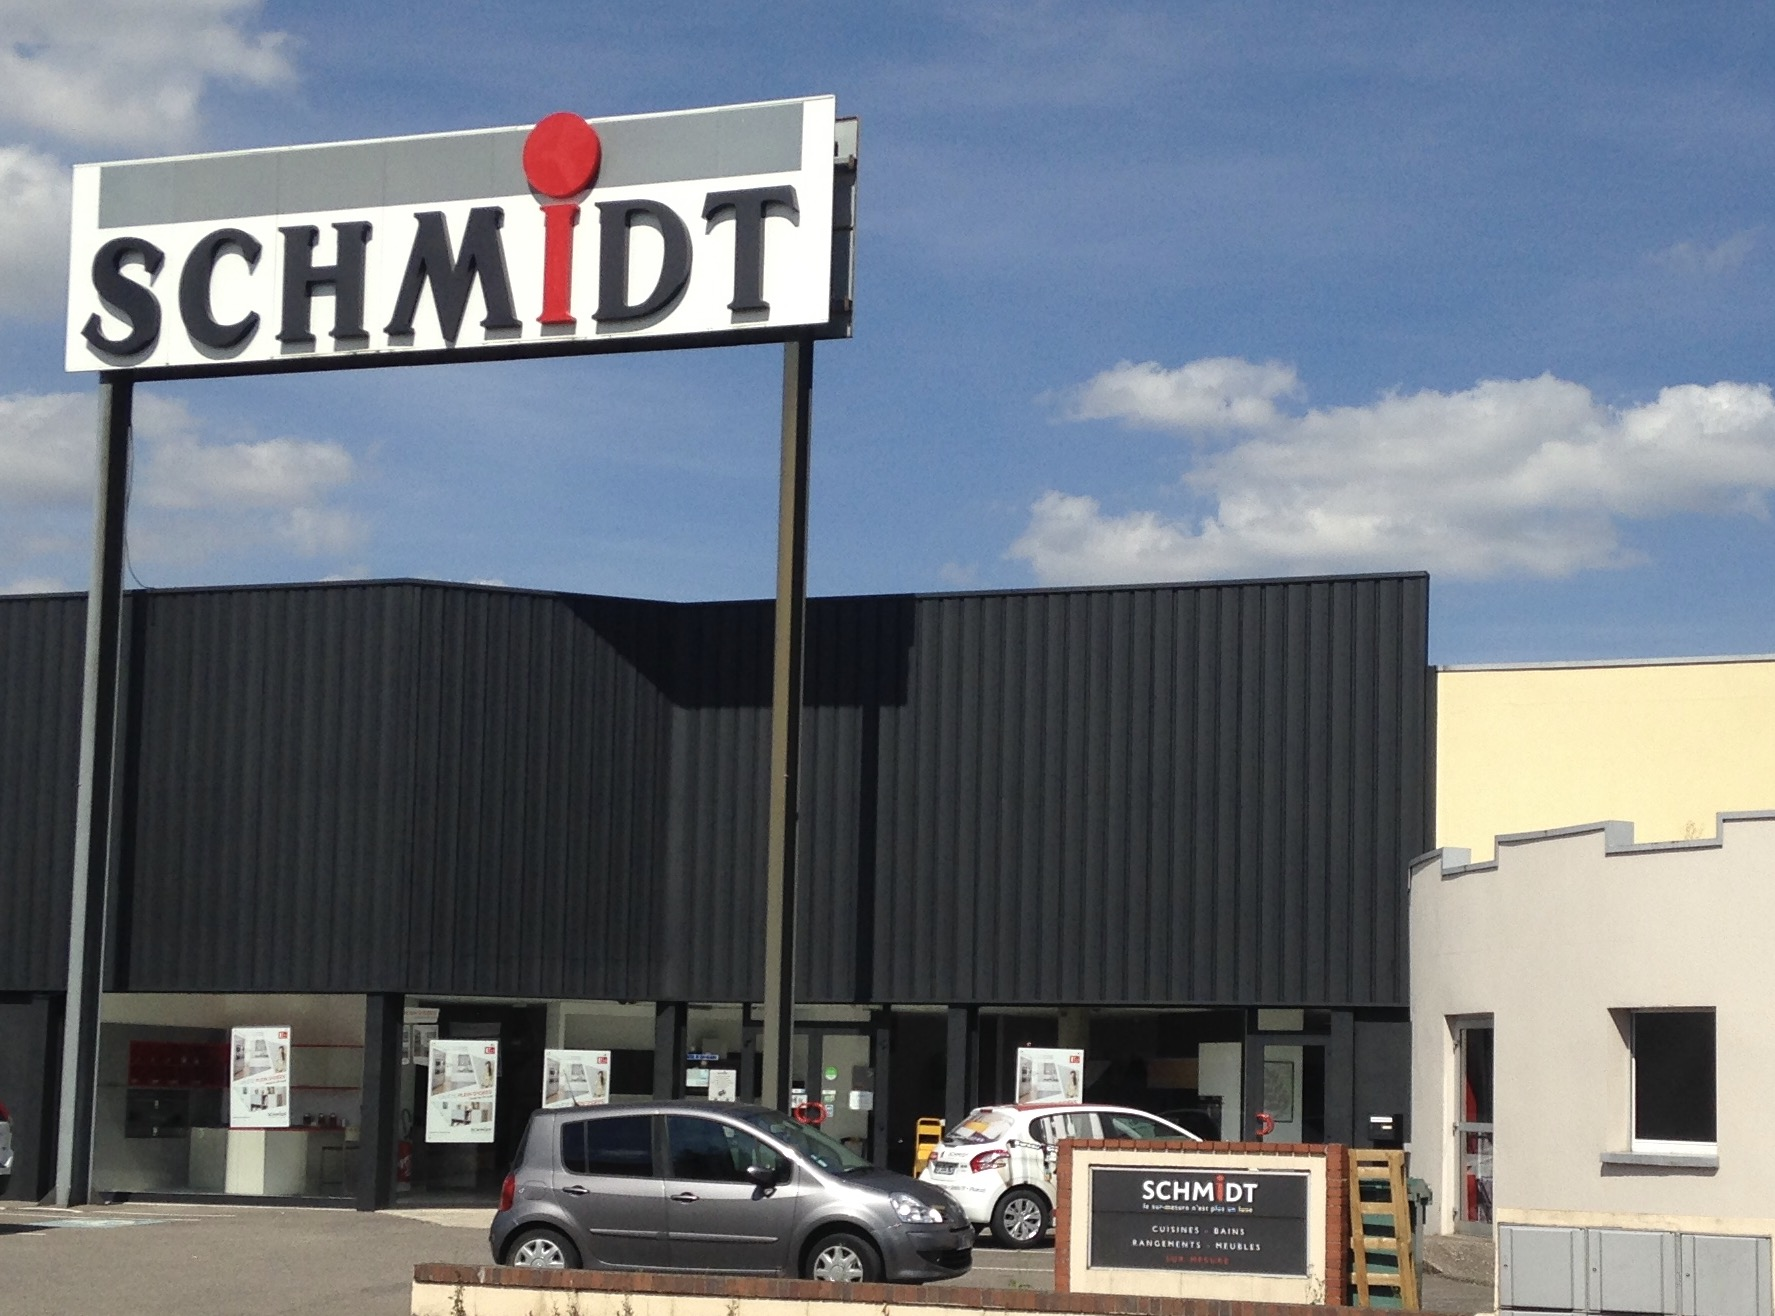 SCHMIDT ESSEY-LES-NANCY